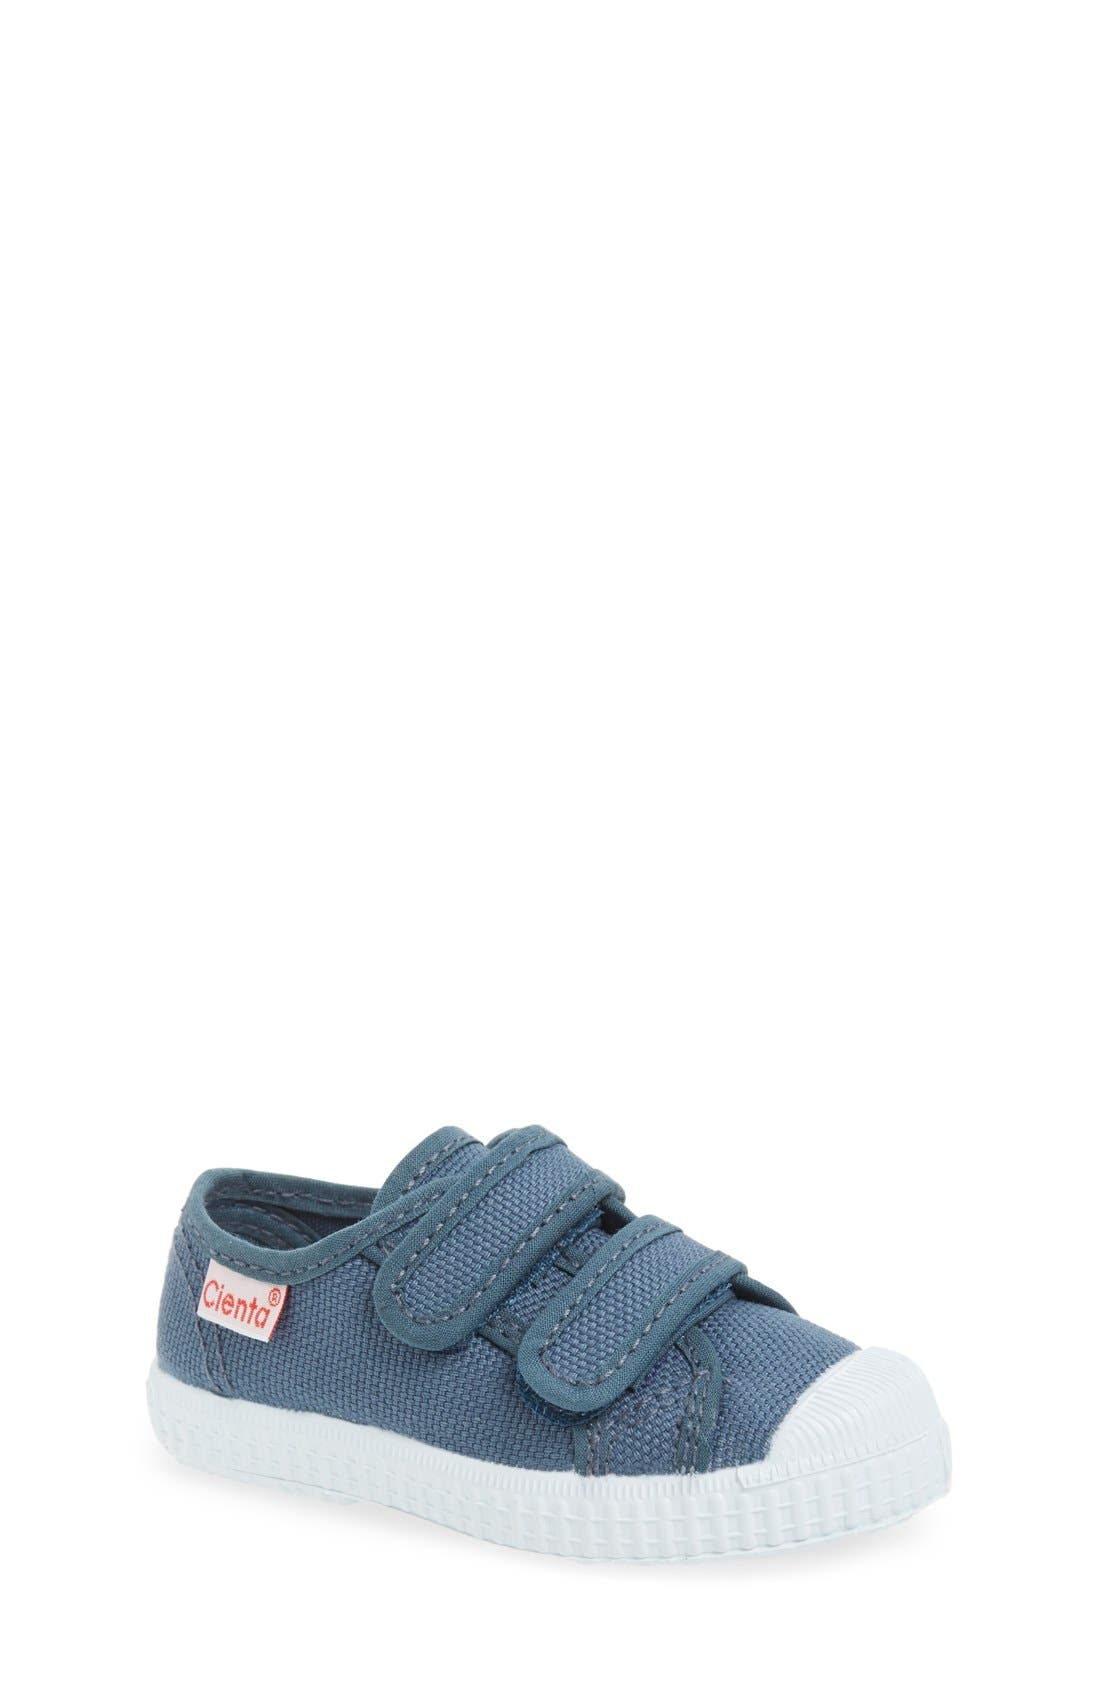 Canvas Sneaker,                         Main,                         color, 021